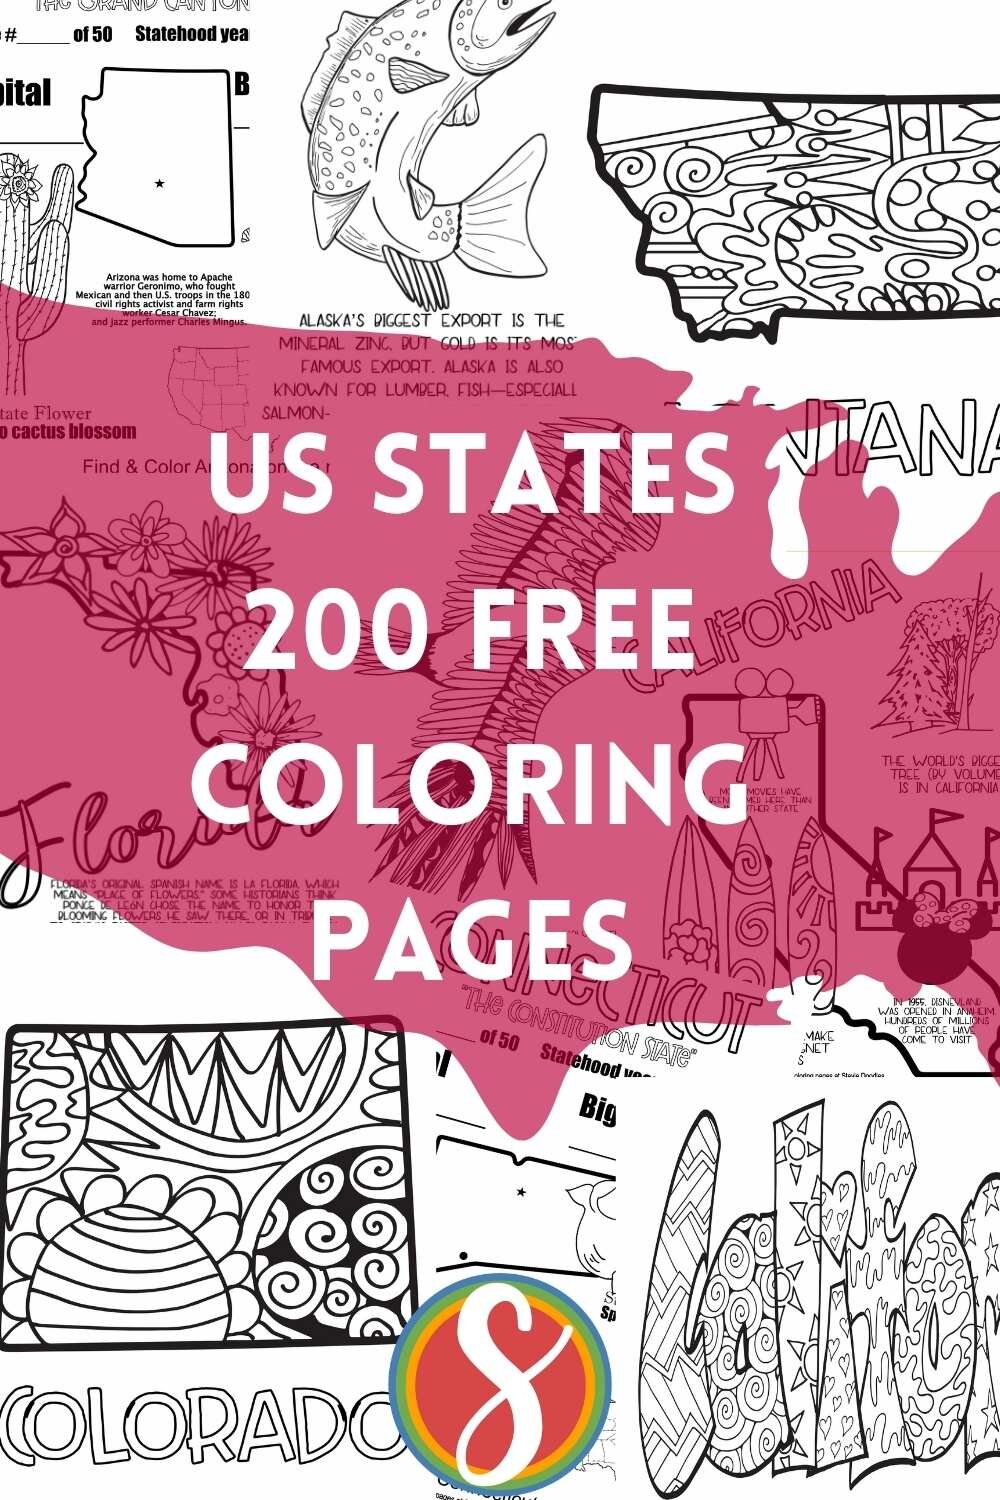 200 free state coloring pages - 4 pages for each of the 50 US States free to print and color from Stevie Doodles site fun of free coloring sheets